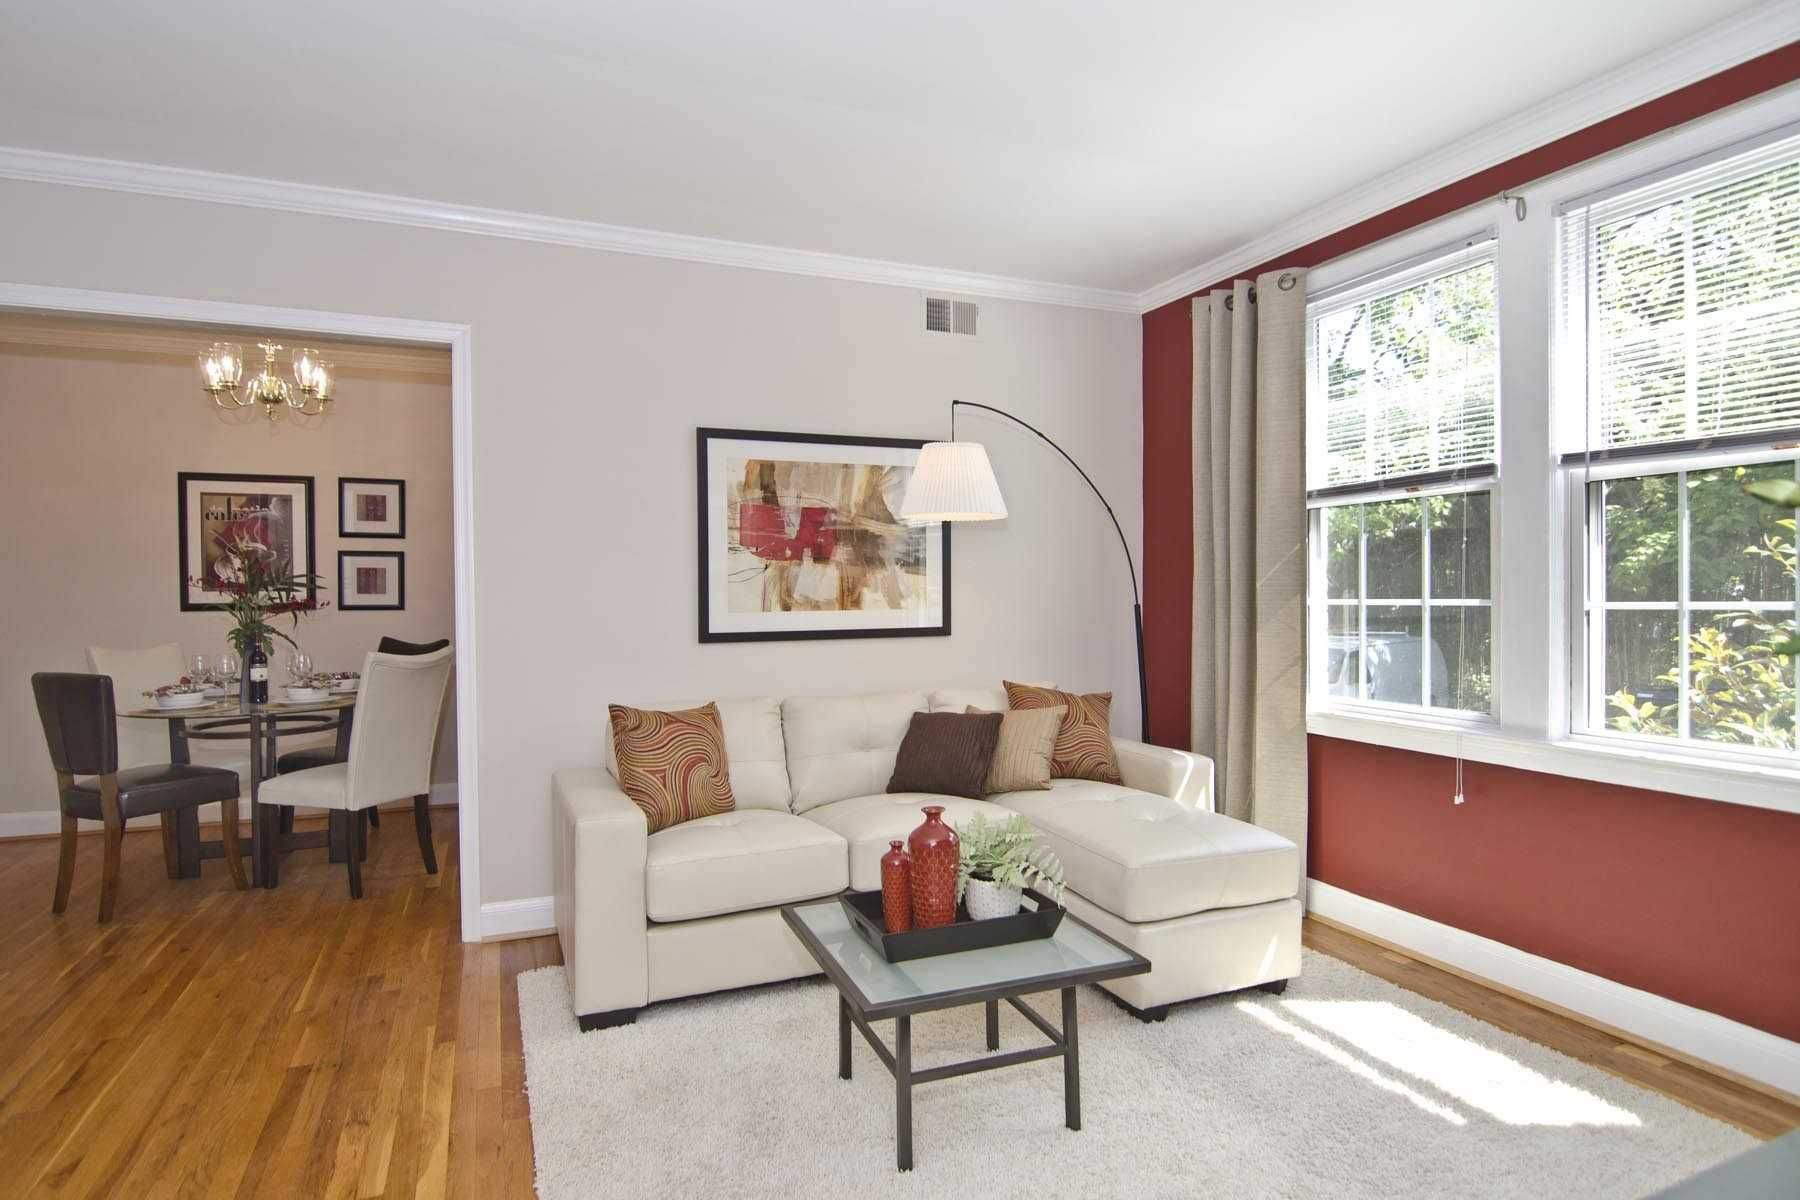 Second Chance Apartments In Conyers Ga Apartment Room Furnished Apartments For Rent Basement Apartment For Rent